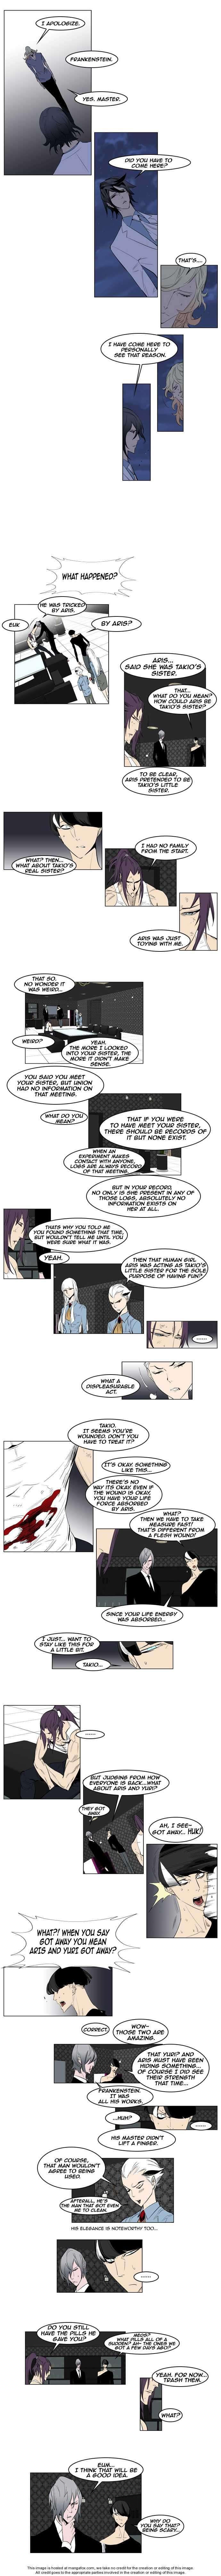 Noblesse 152 Page 2